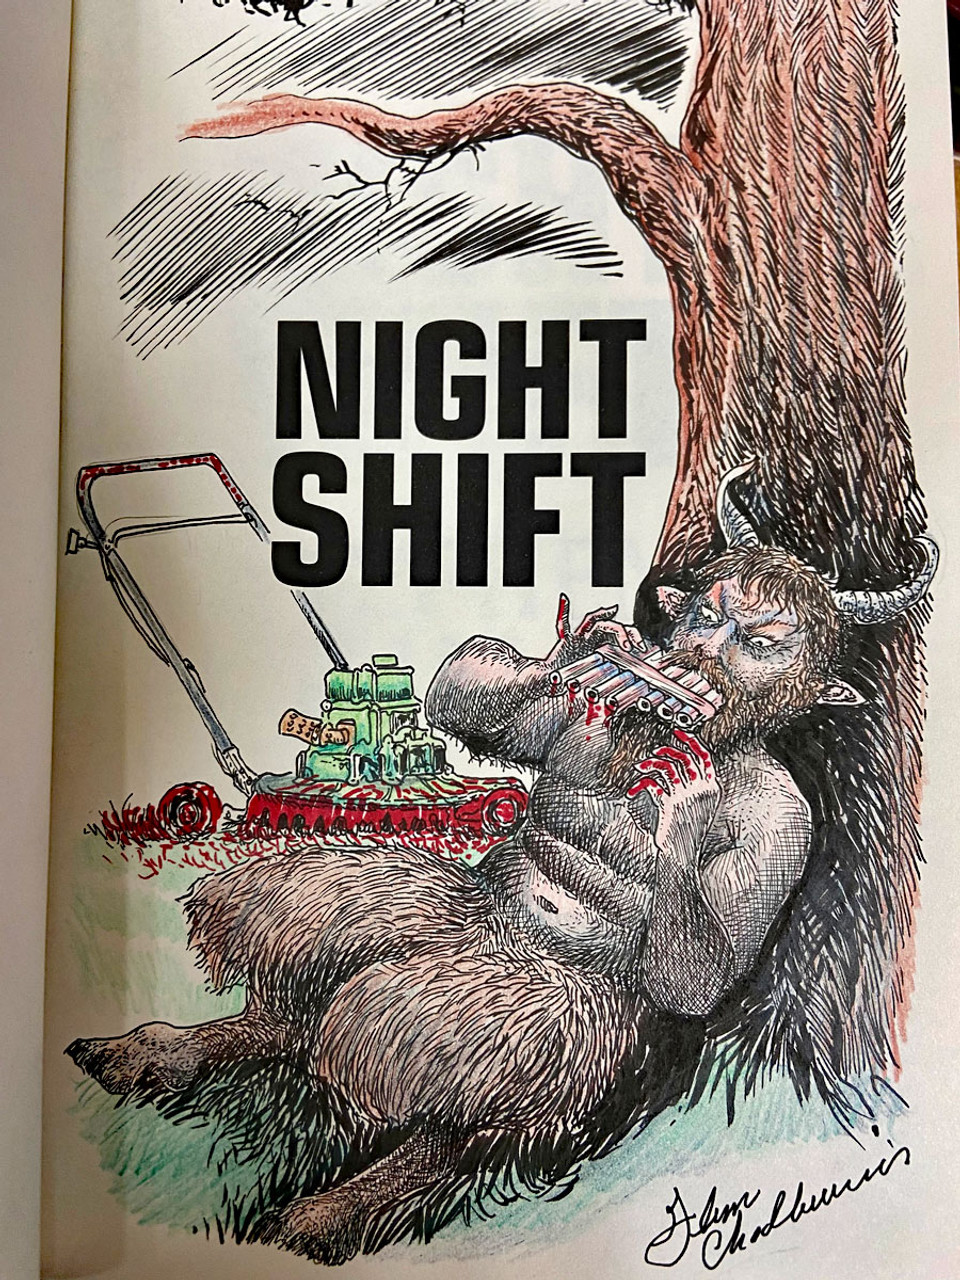 """Stephen King """"Night Shift"""" Signed & Remarqued by Glenn Chadbourne, Full Color 1-Page Remarque, The Deluxe Special Limited Slipcased Gift Edition of 3,000 [Very Fine]"""